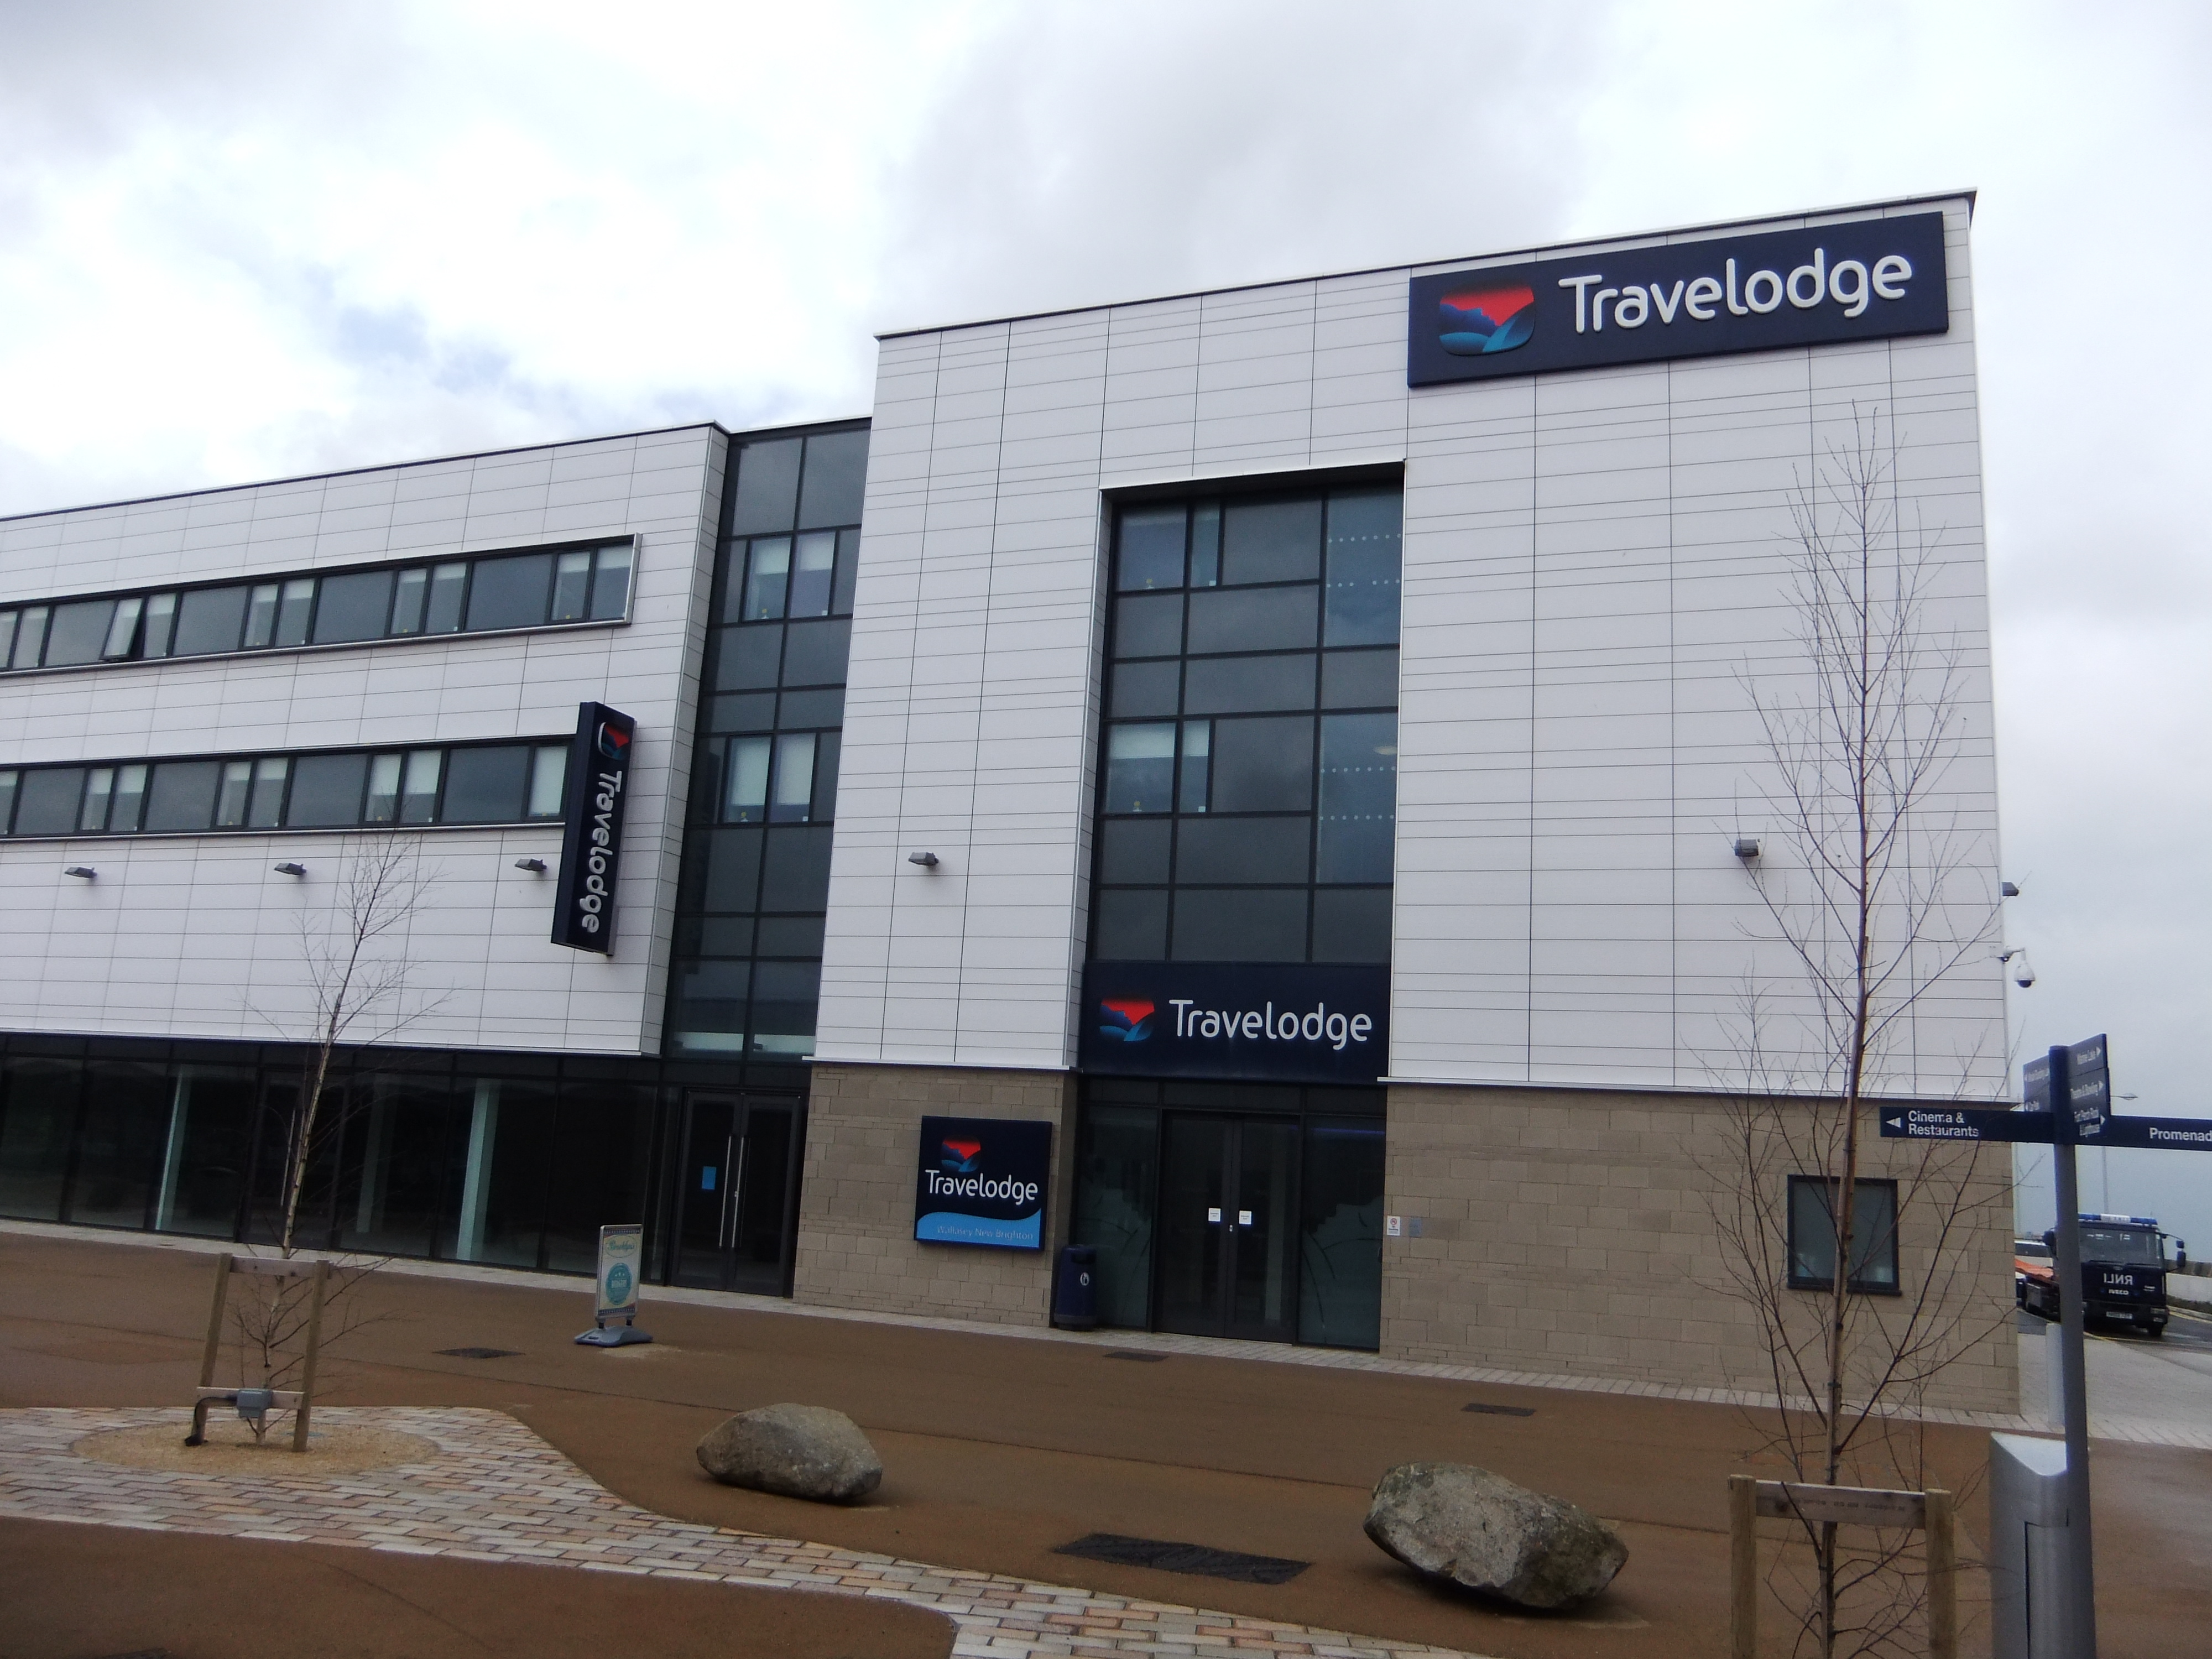 Travelodge Can You Extend A Stay In The Same Room